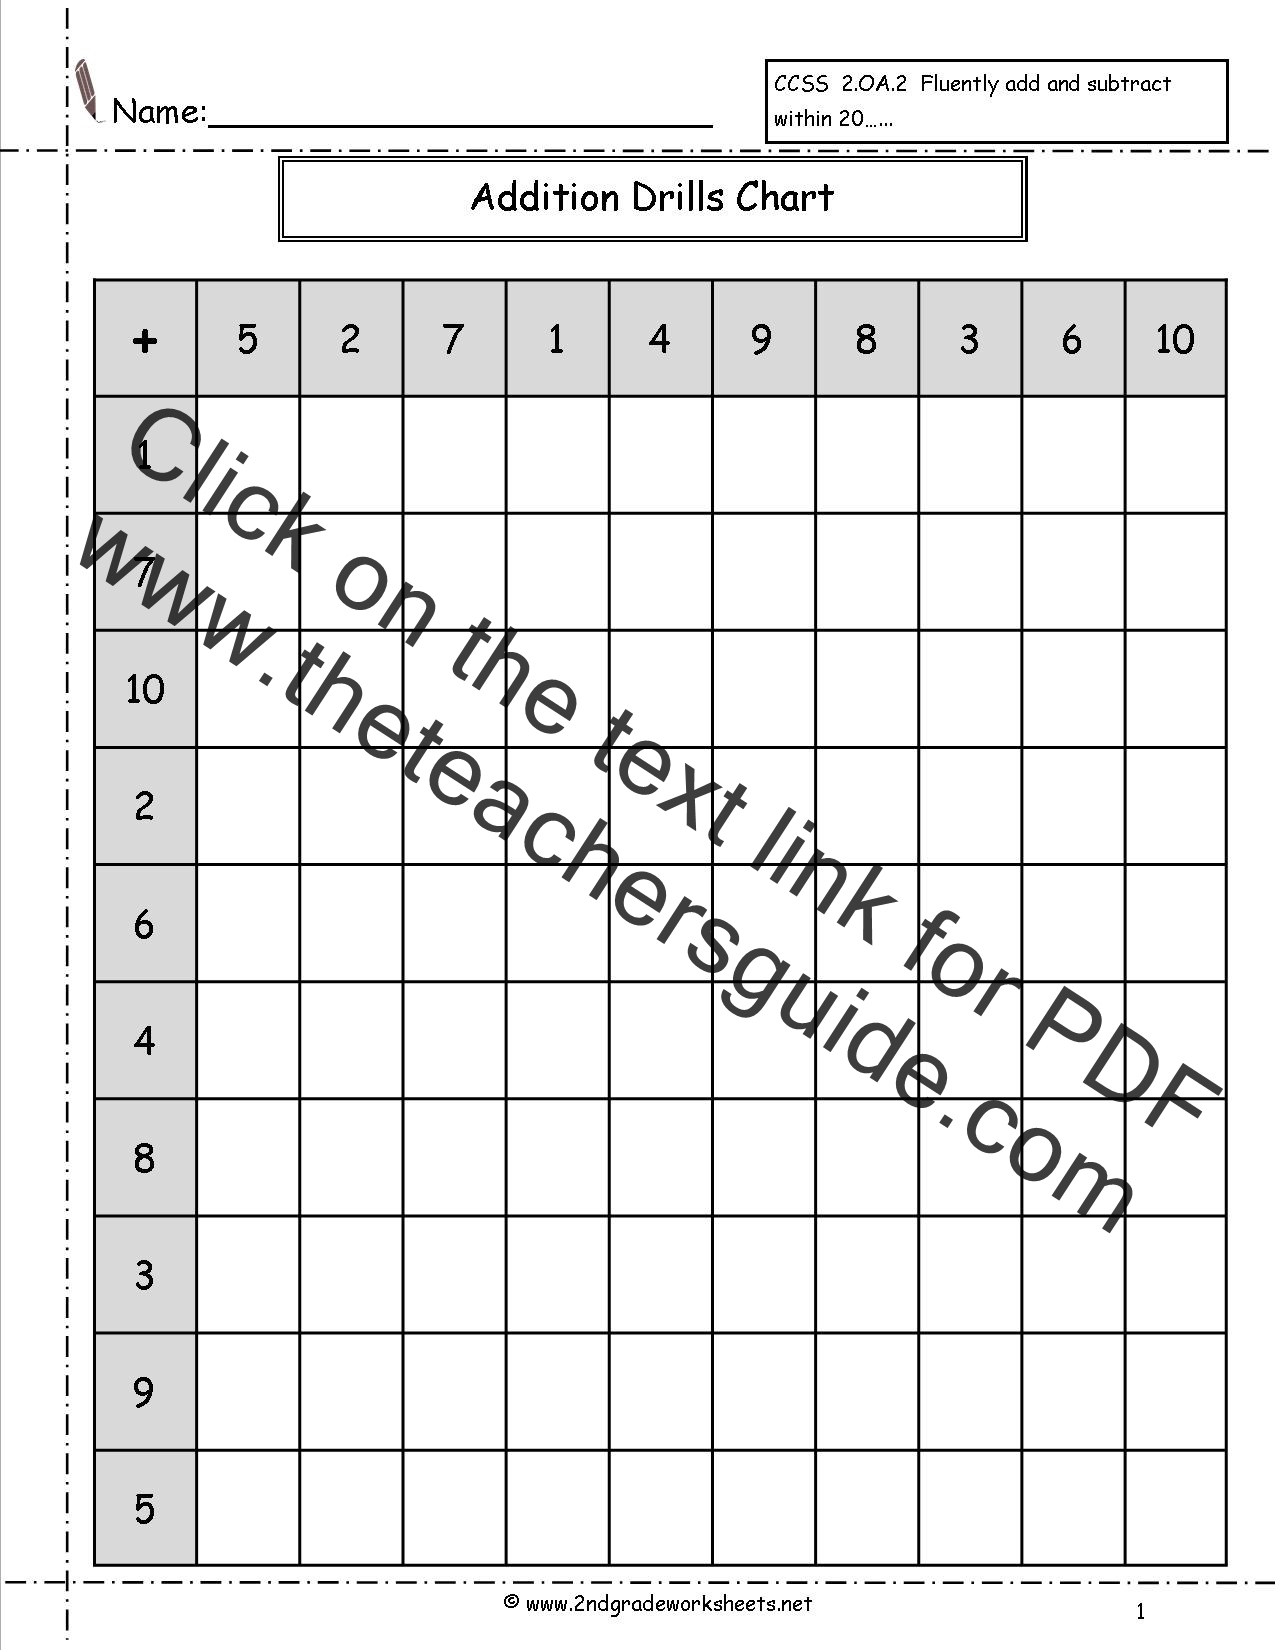 Single Digit Addition Fluency Drills Worksheets – Addition Drill Worksheets